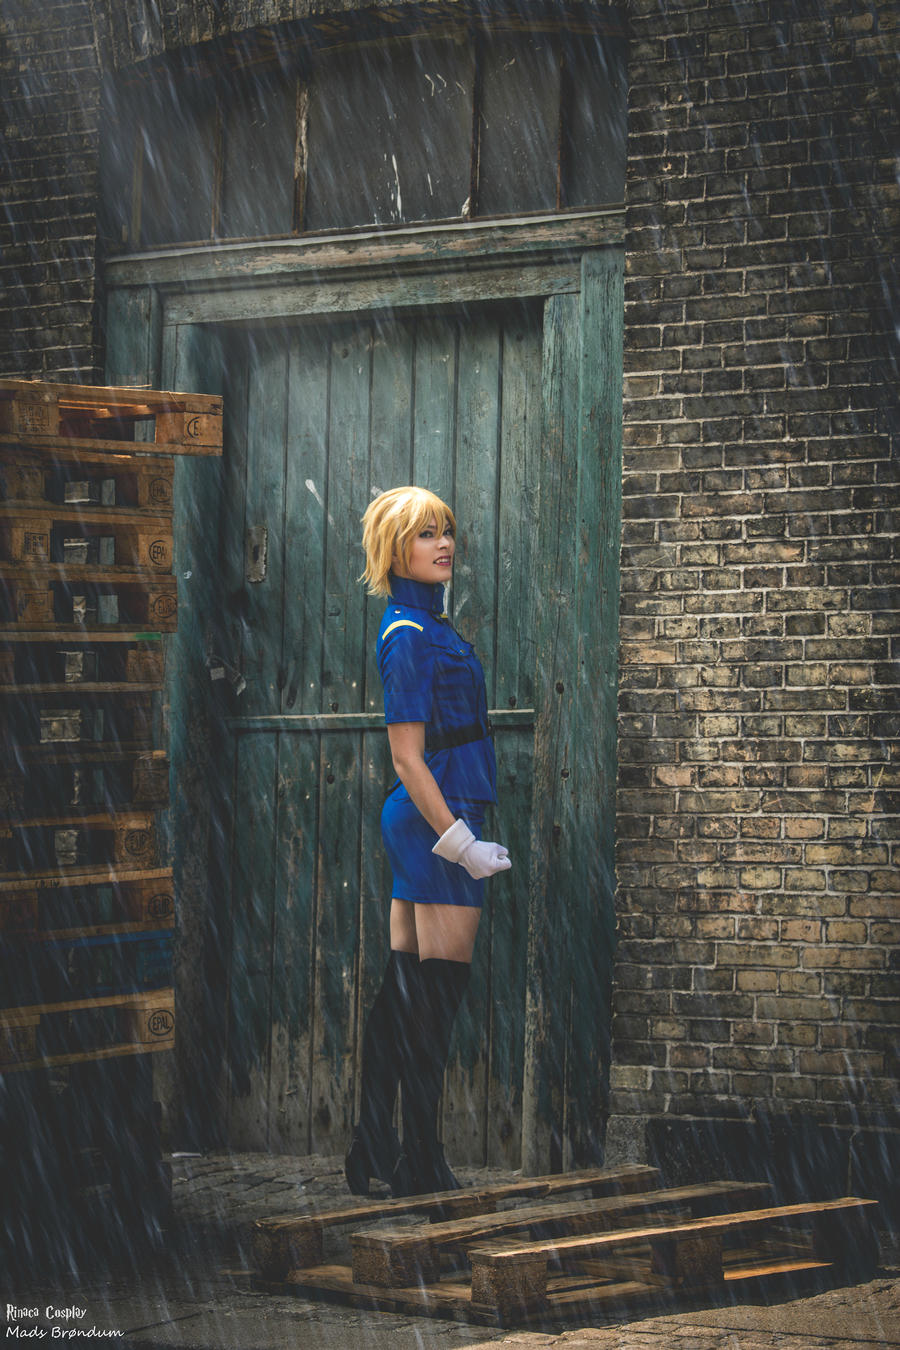 Hell's Gate Arrested by Rinaca-Cosplay